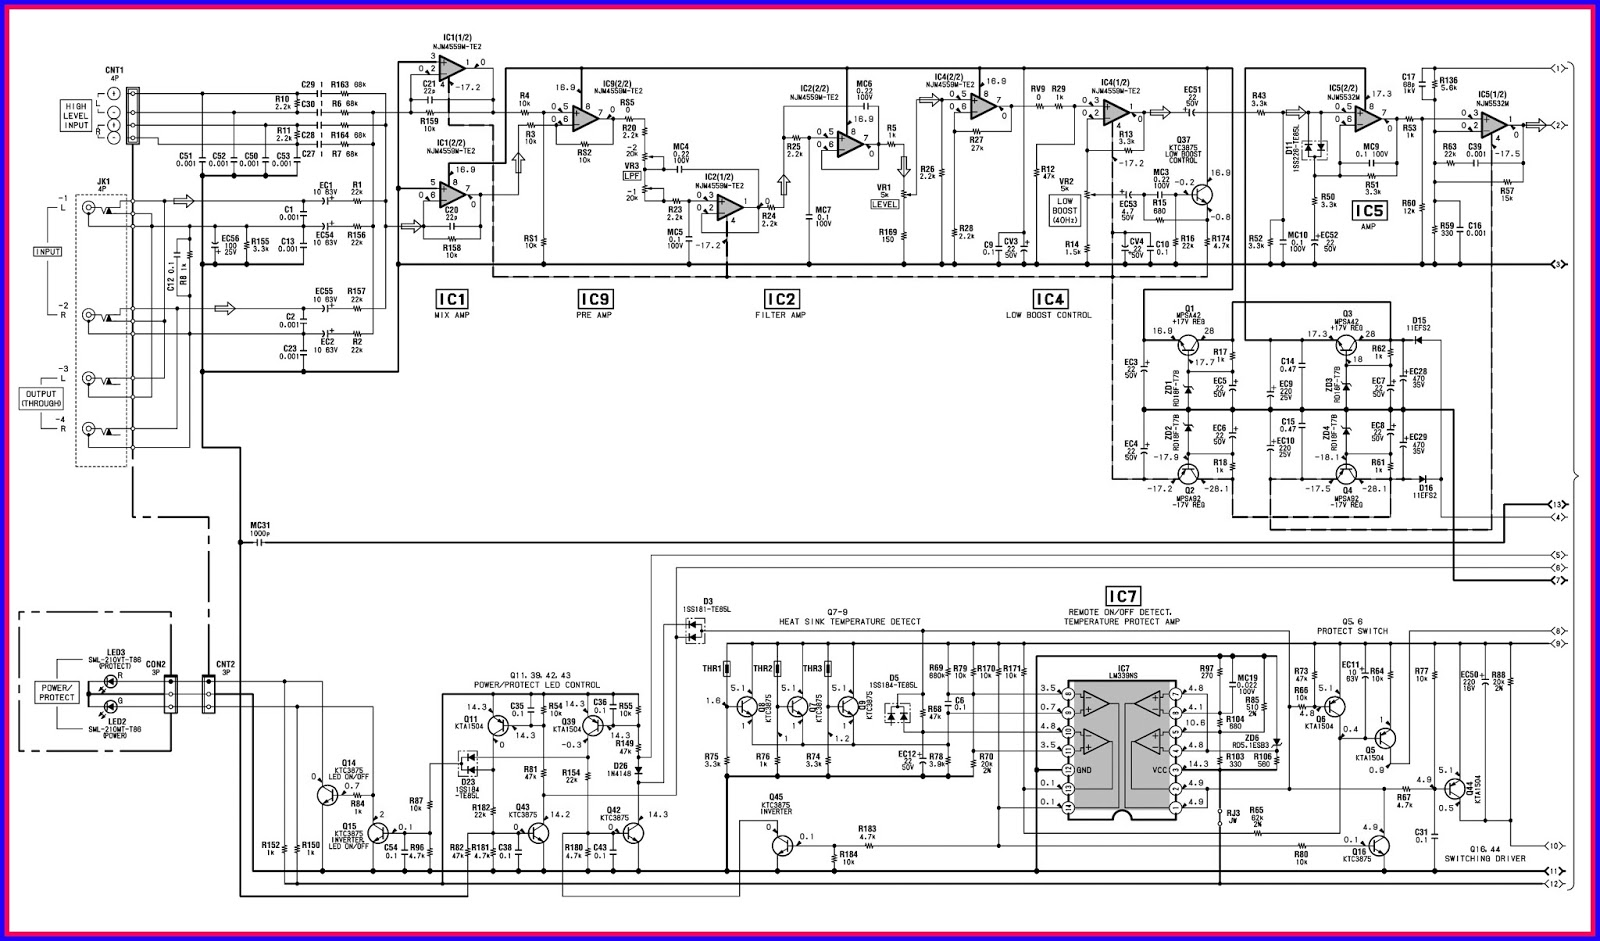 pte%2Bamp electronic equipment repair centre sony xplod xm d1000p5 car amp sony xplod 600w amp wiring diagram at n-0.co